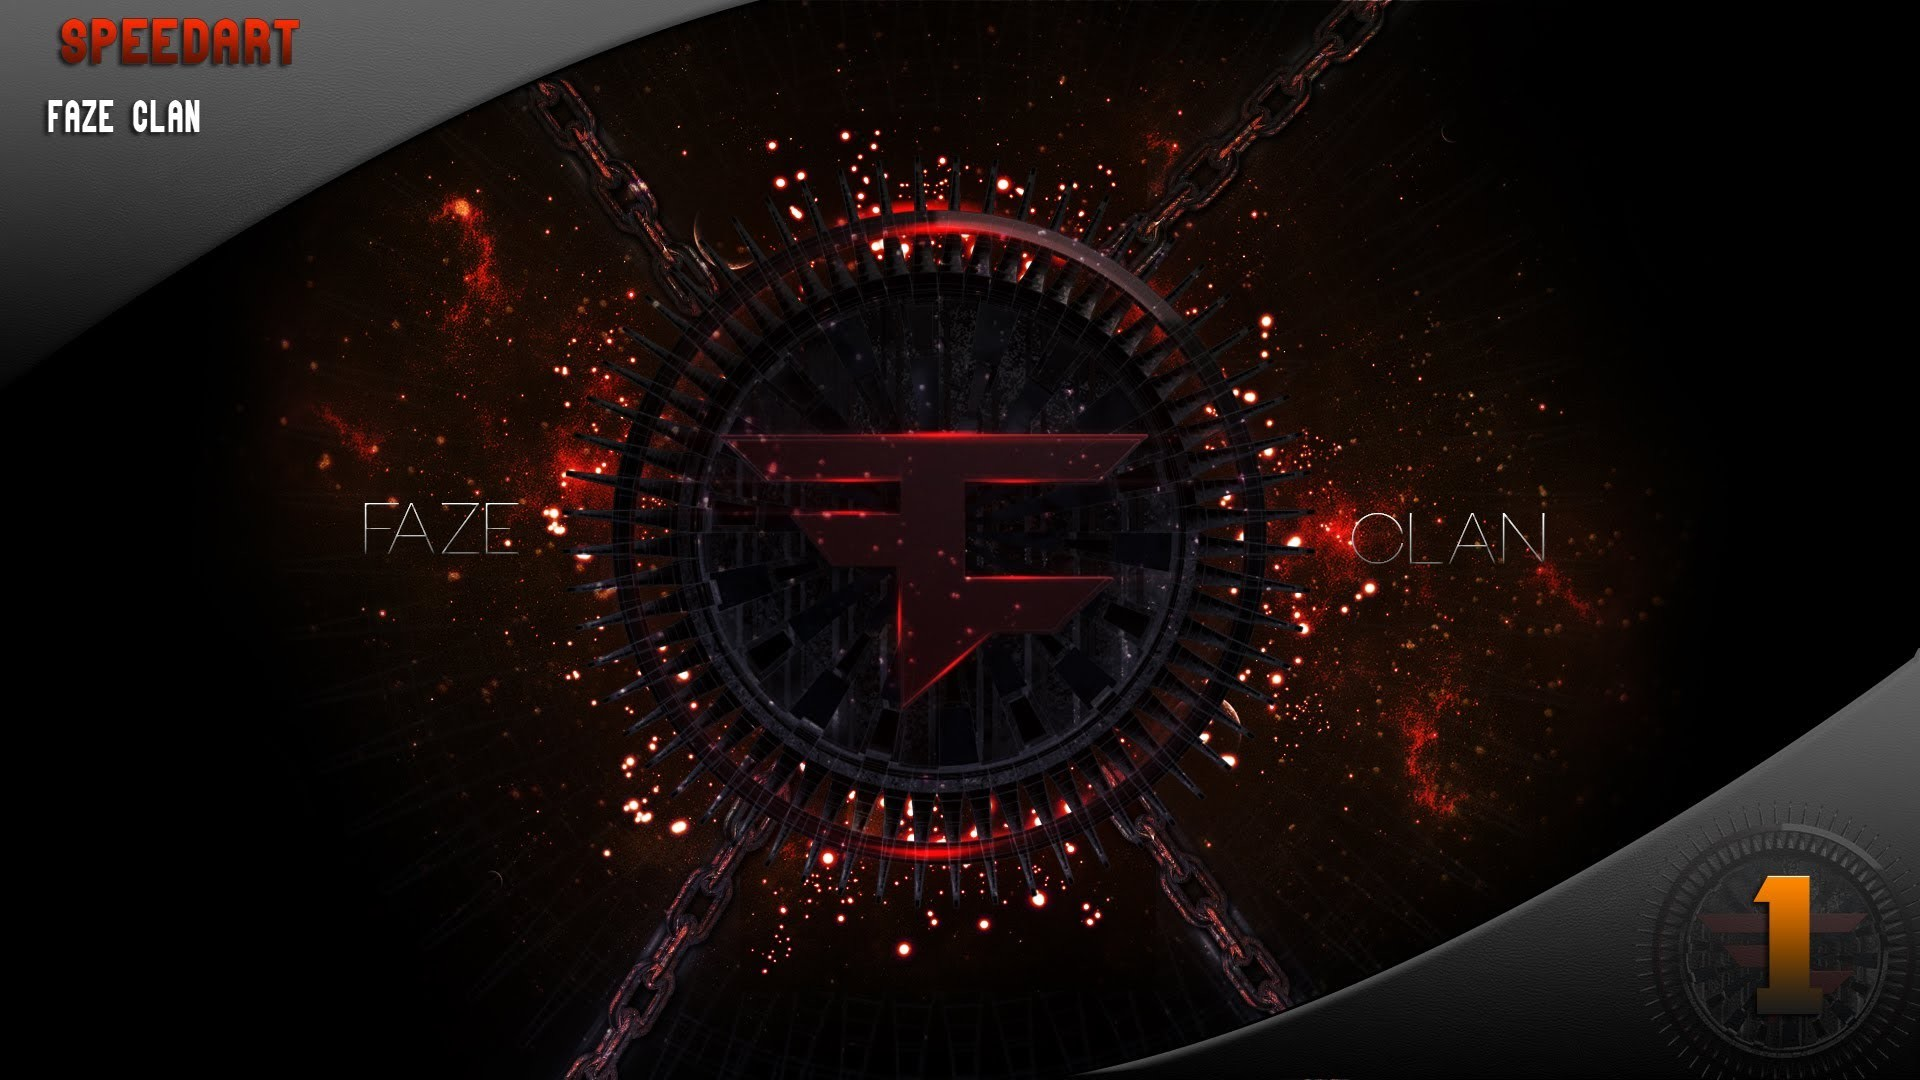 YouTube FaZe Clan submited images.